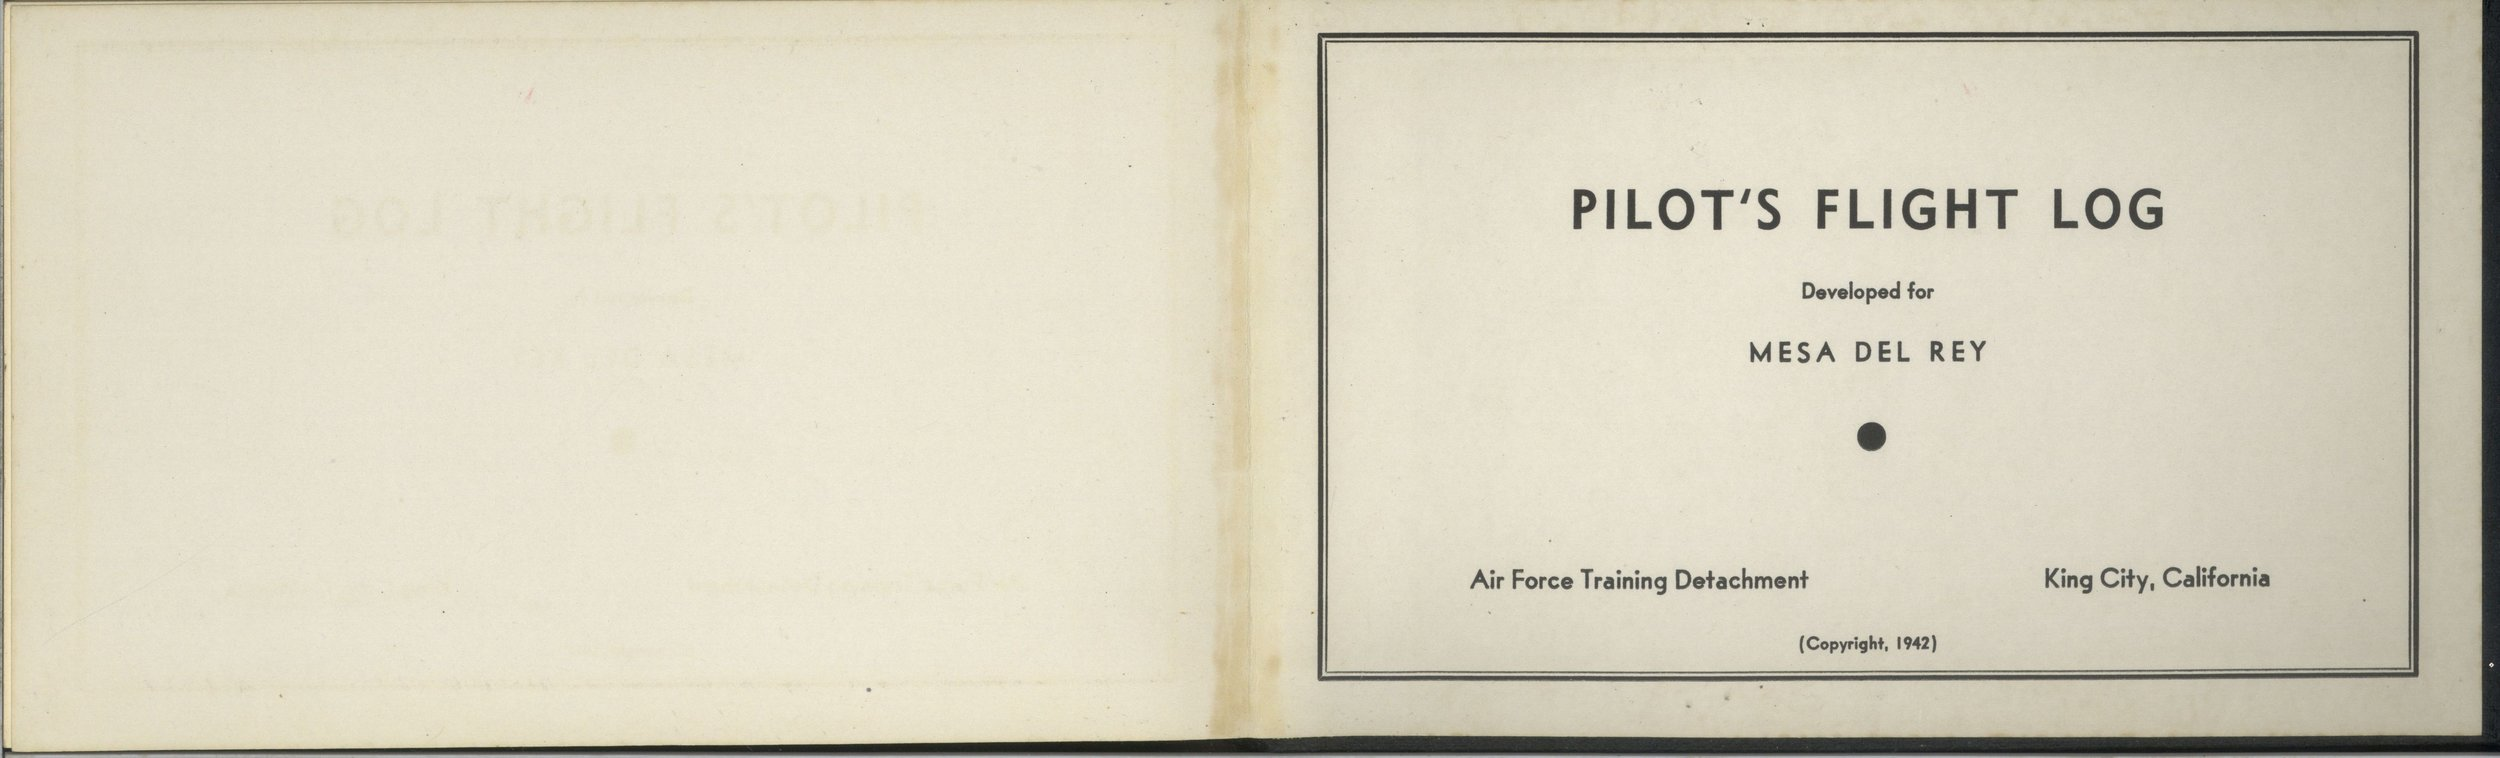 Bruland pilot's log opening page